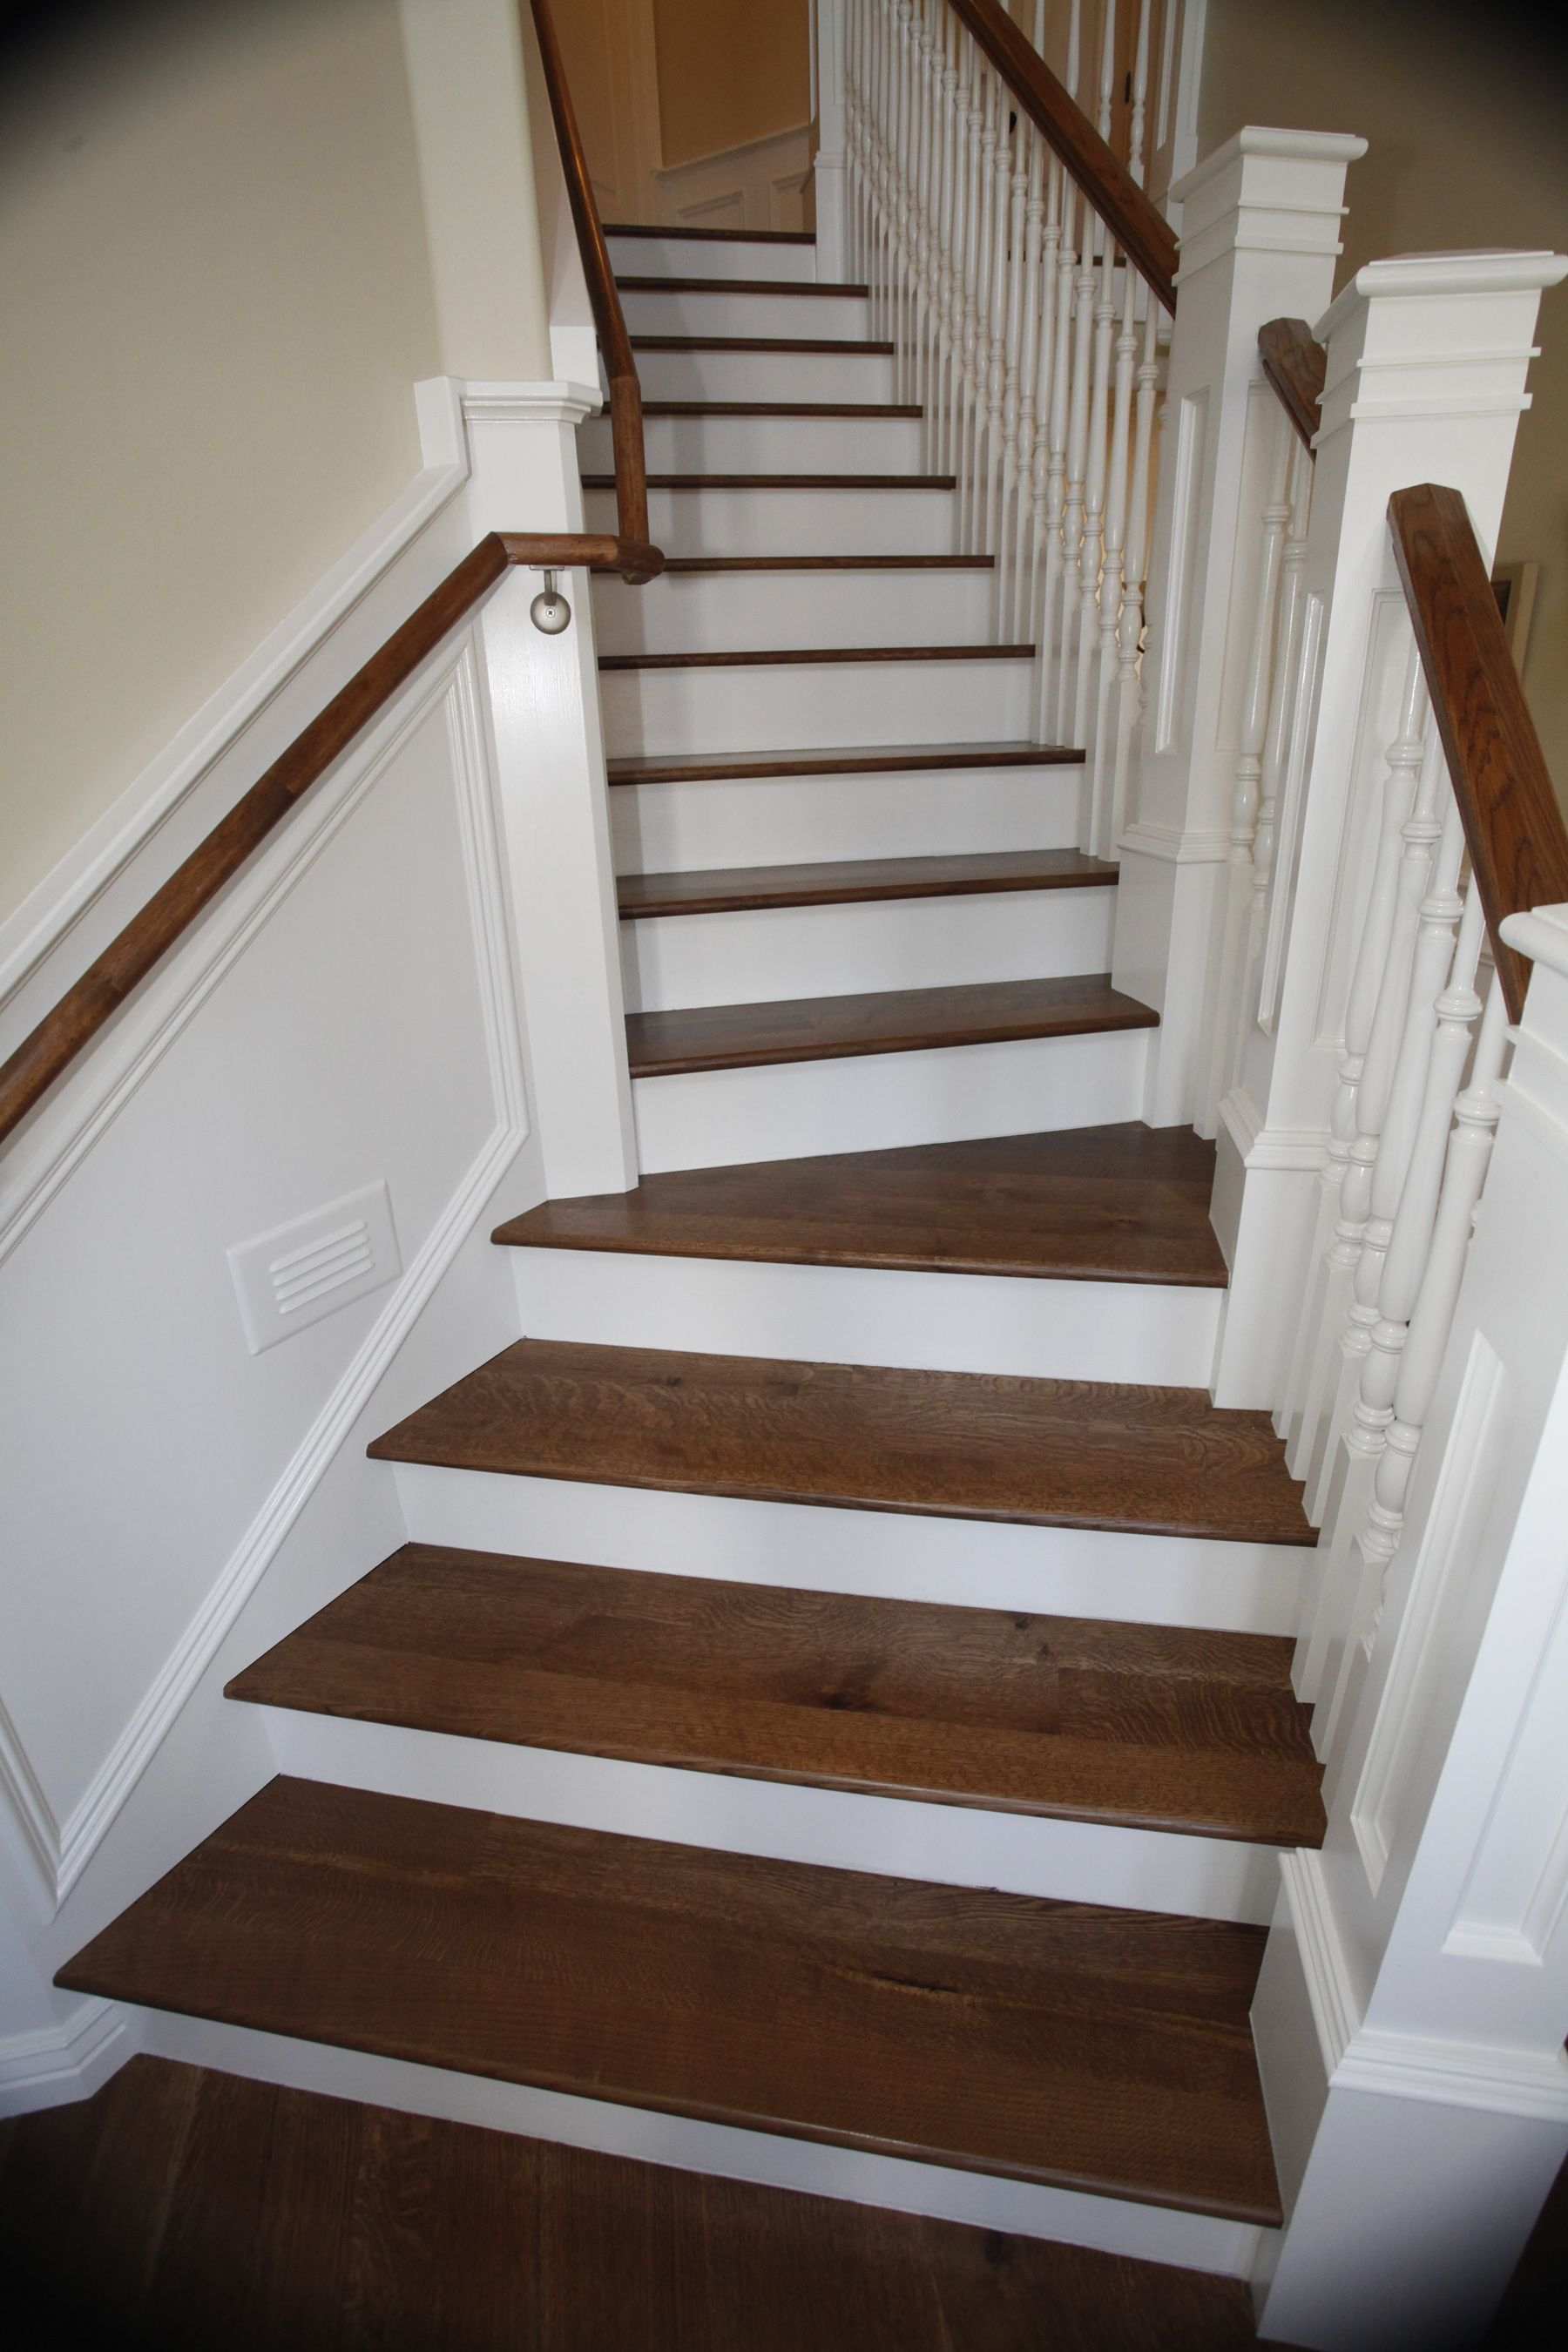 Best Wood Floor Stairs Pictures Google Search Wood Floor 400 x 300